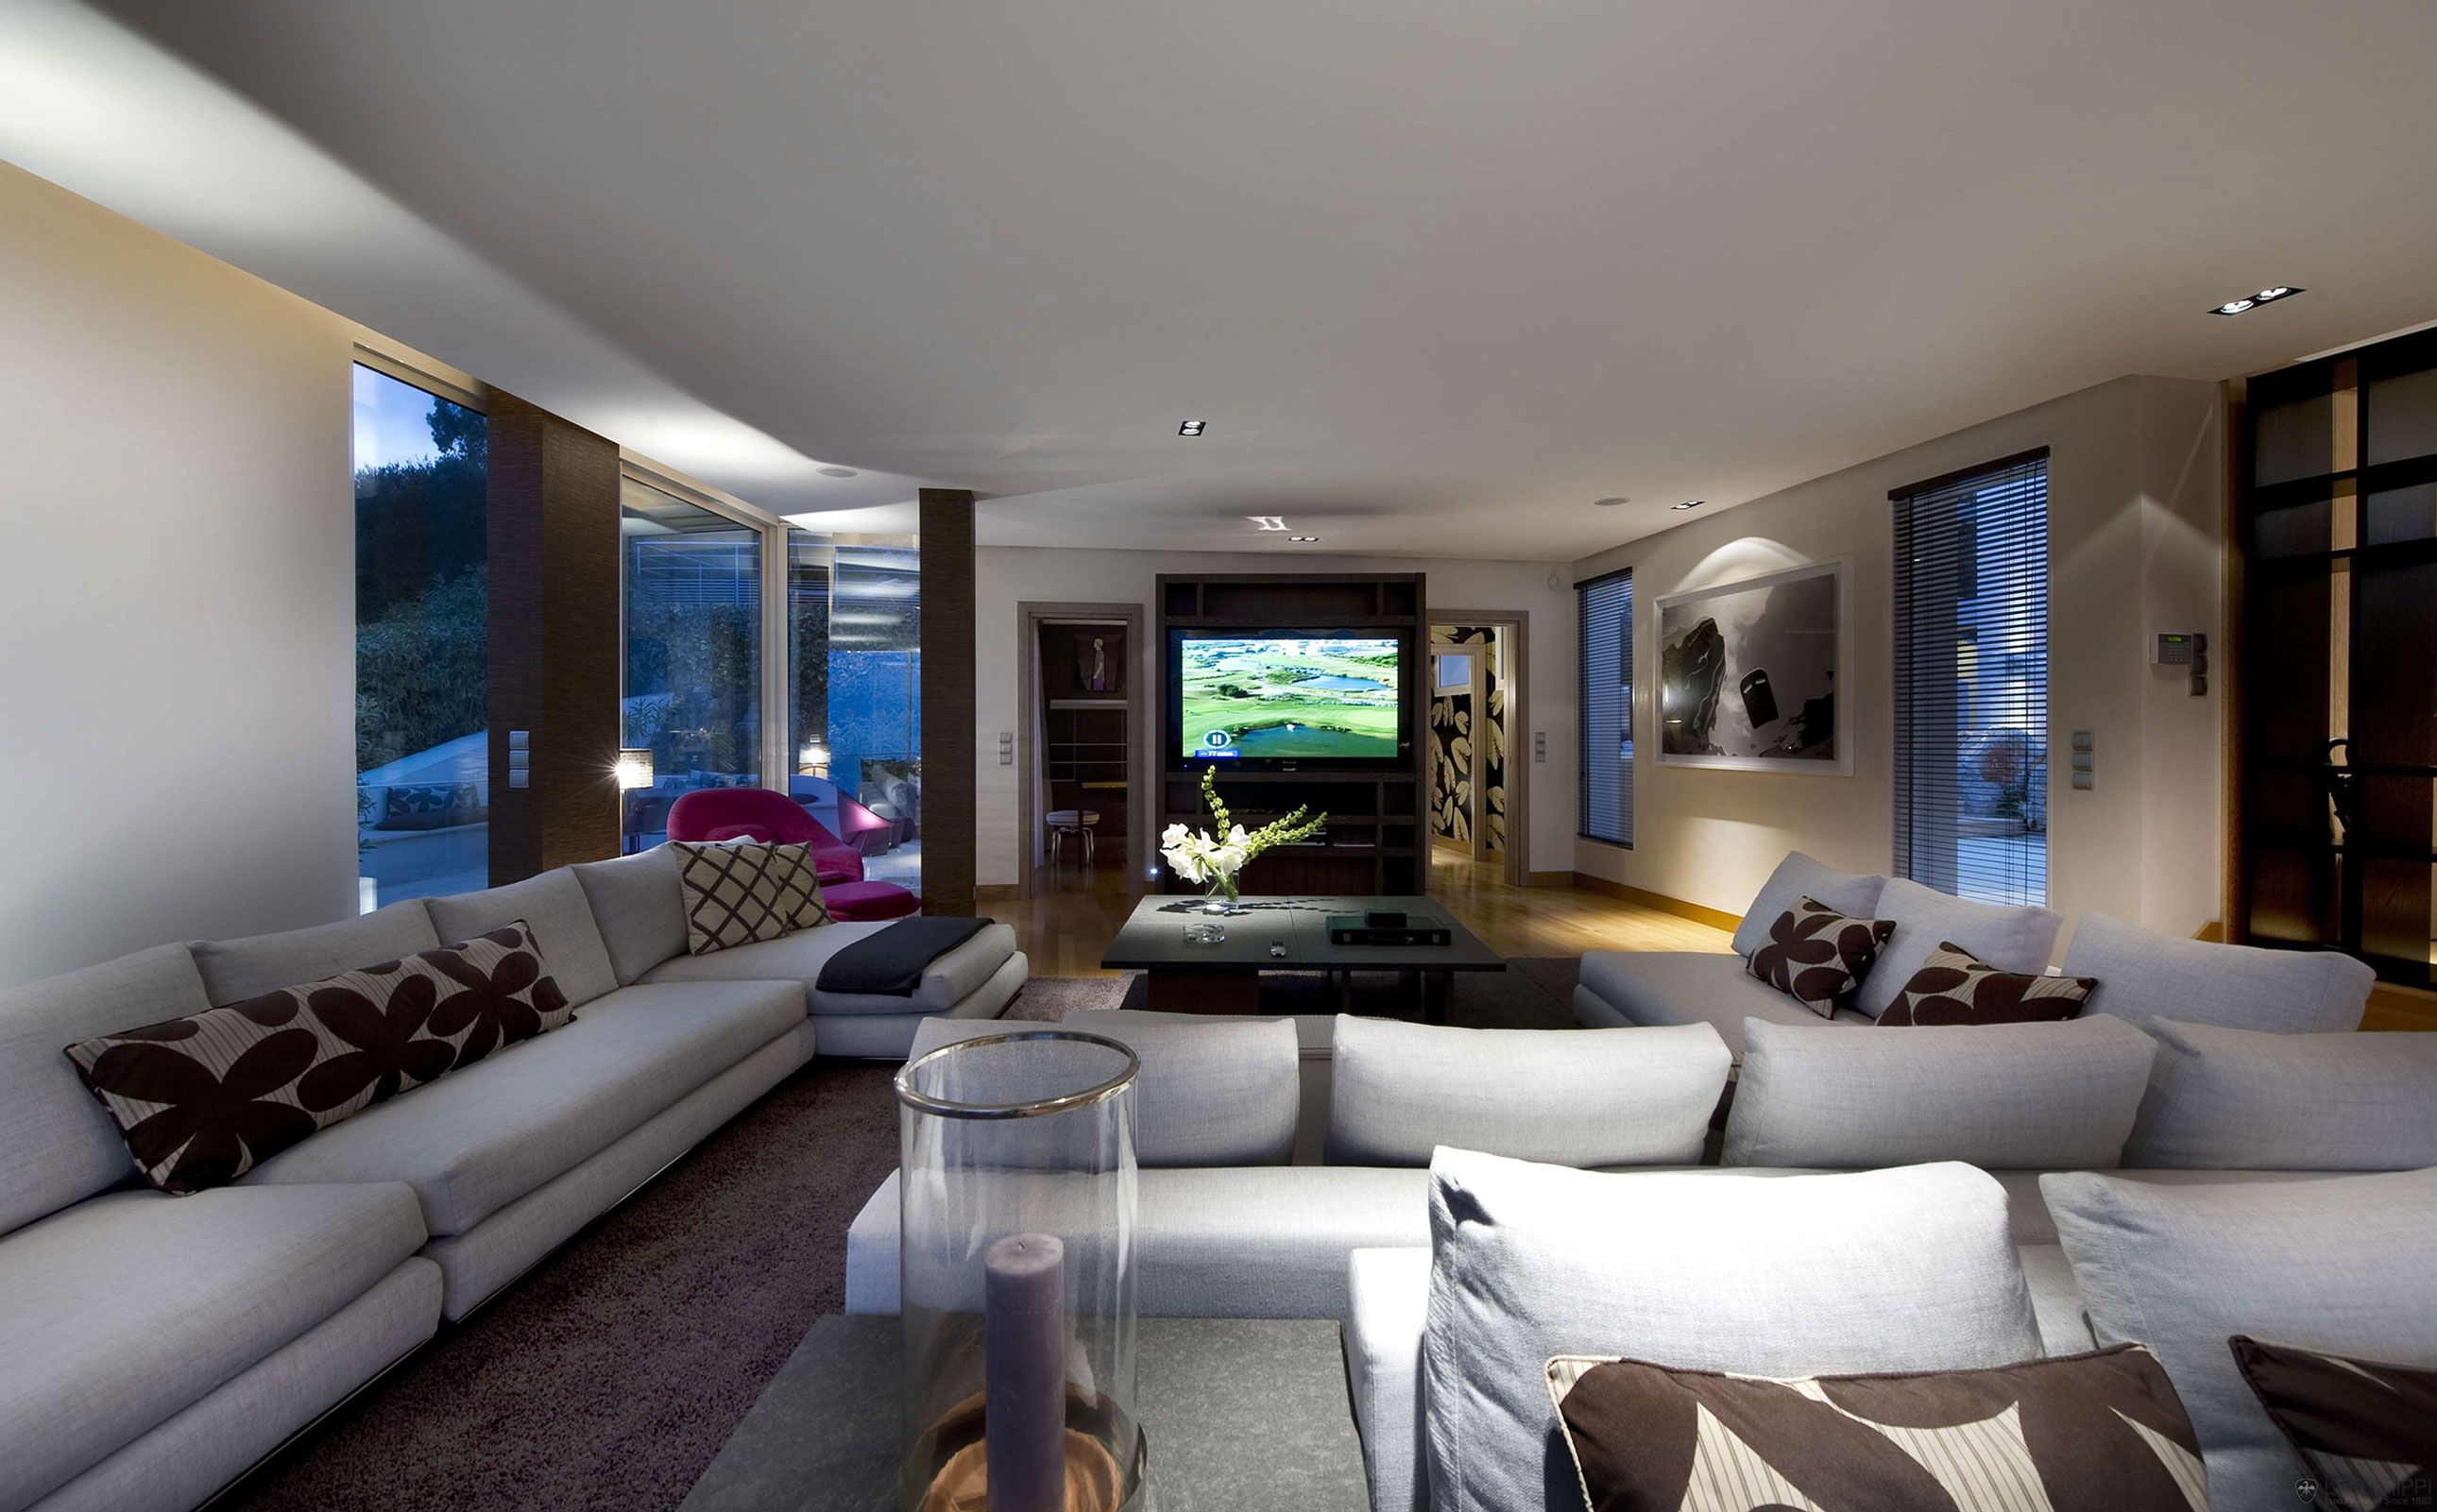 Big Living Room Designs Fair Luxury Is At Home At The Resort Villa Located In The Côte D'azur Design Decoration